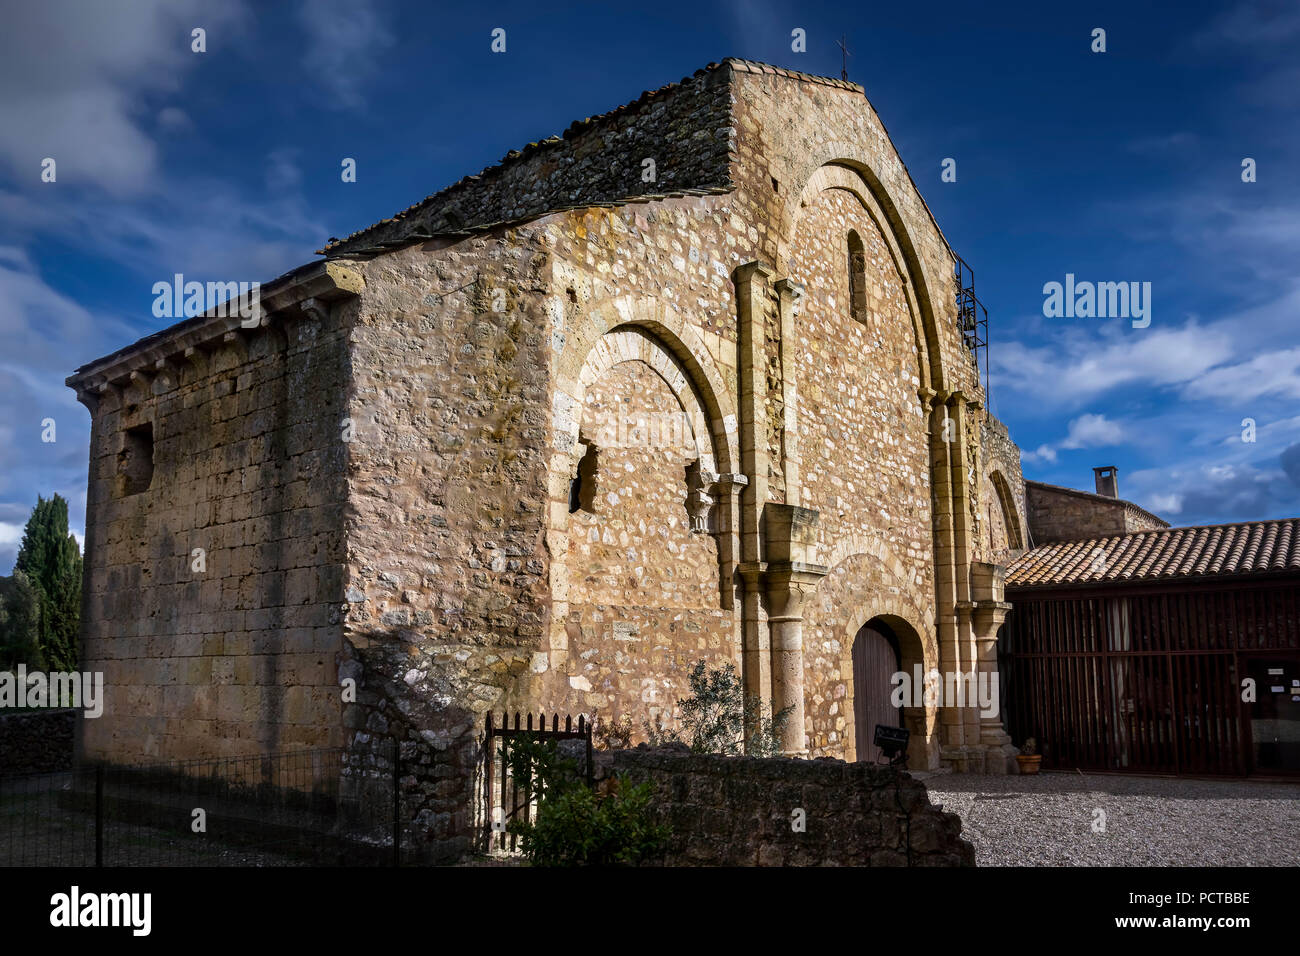 Abbey of the Premonstratensian Order Fontcaude, it is a stage on the St. James pilgrimage route and the last example of Romanesque architecture in the region - Stock Image